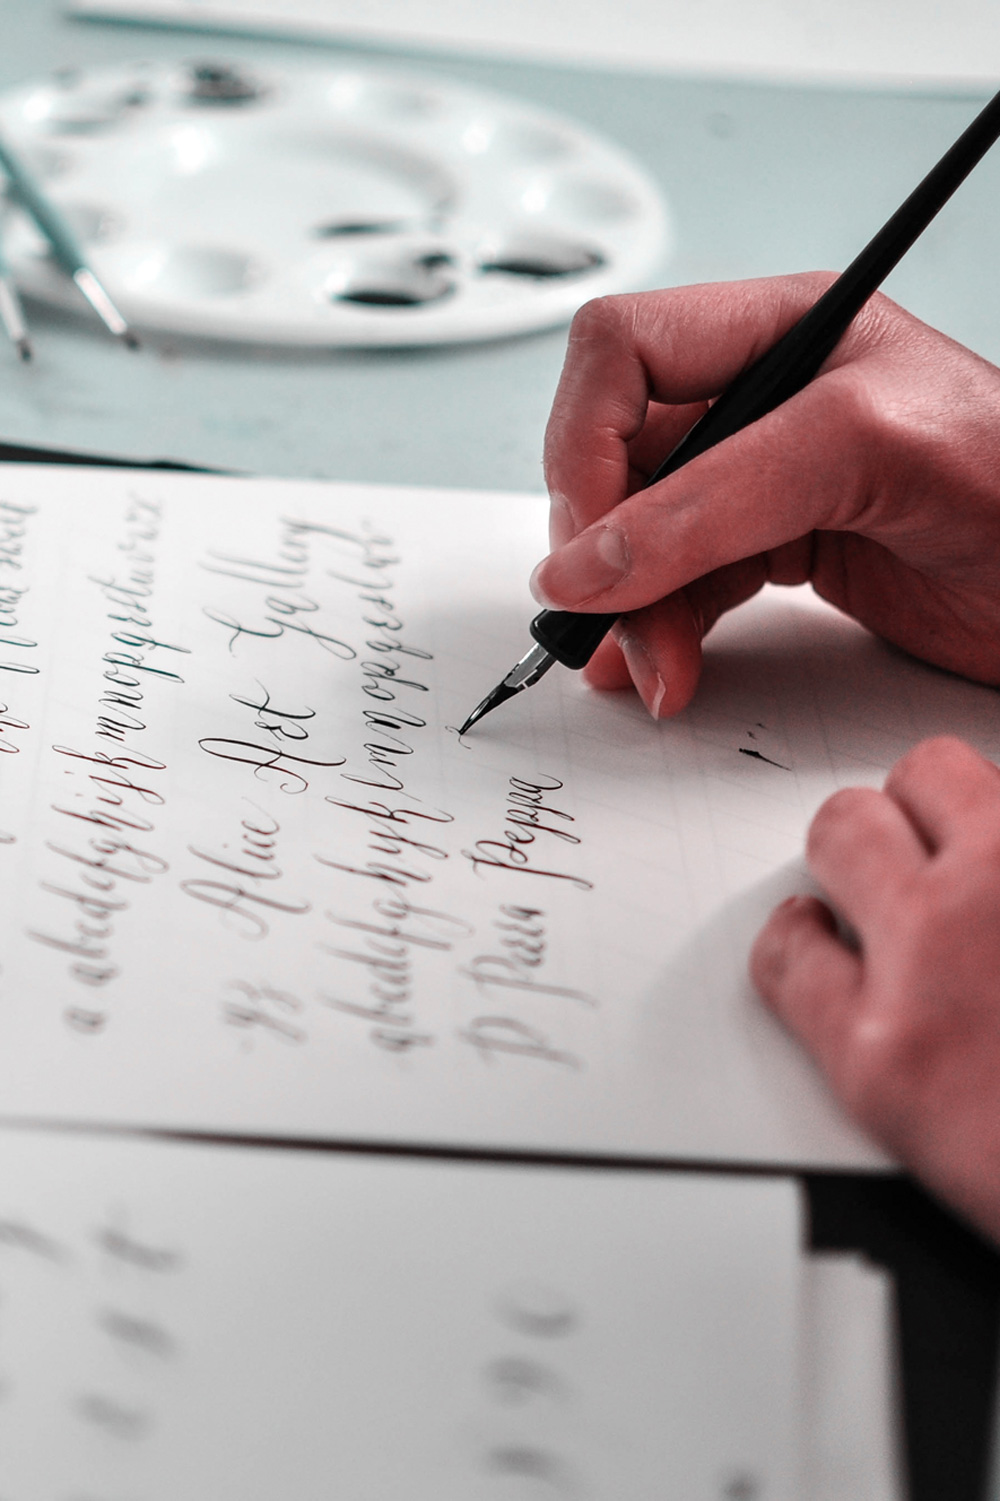 KateHursthouse_Intro-to-Contemporary-Pointed-Pen_Calligraphy3.jpg